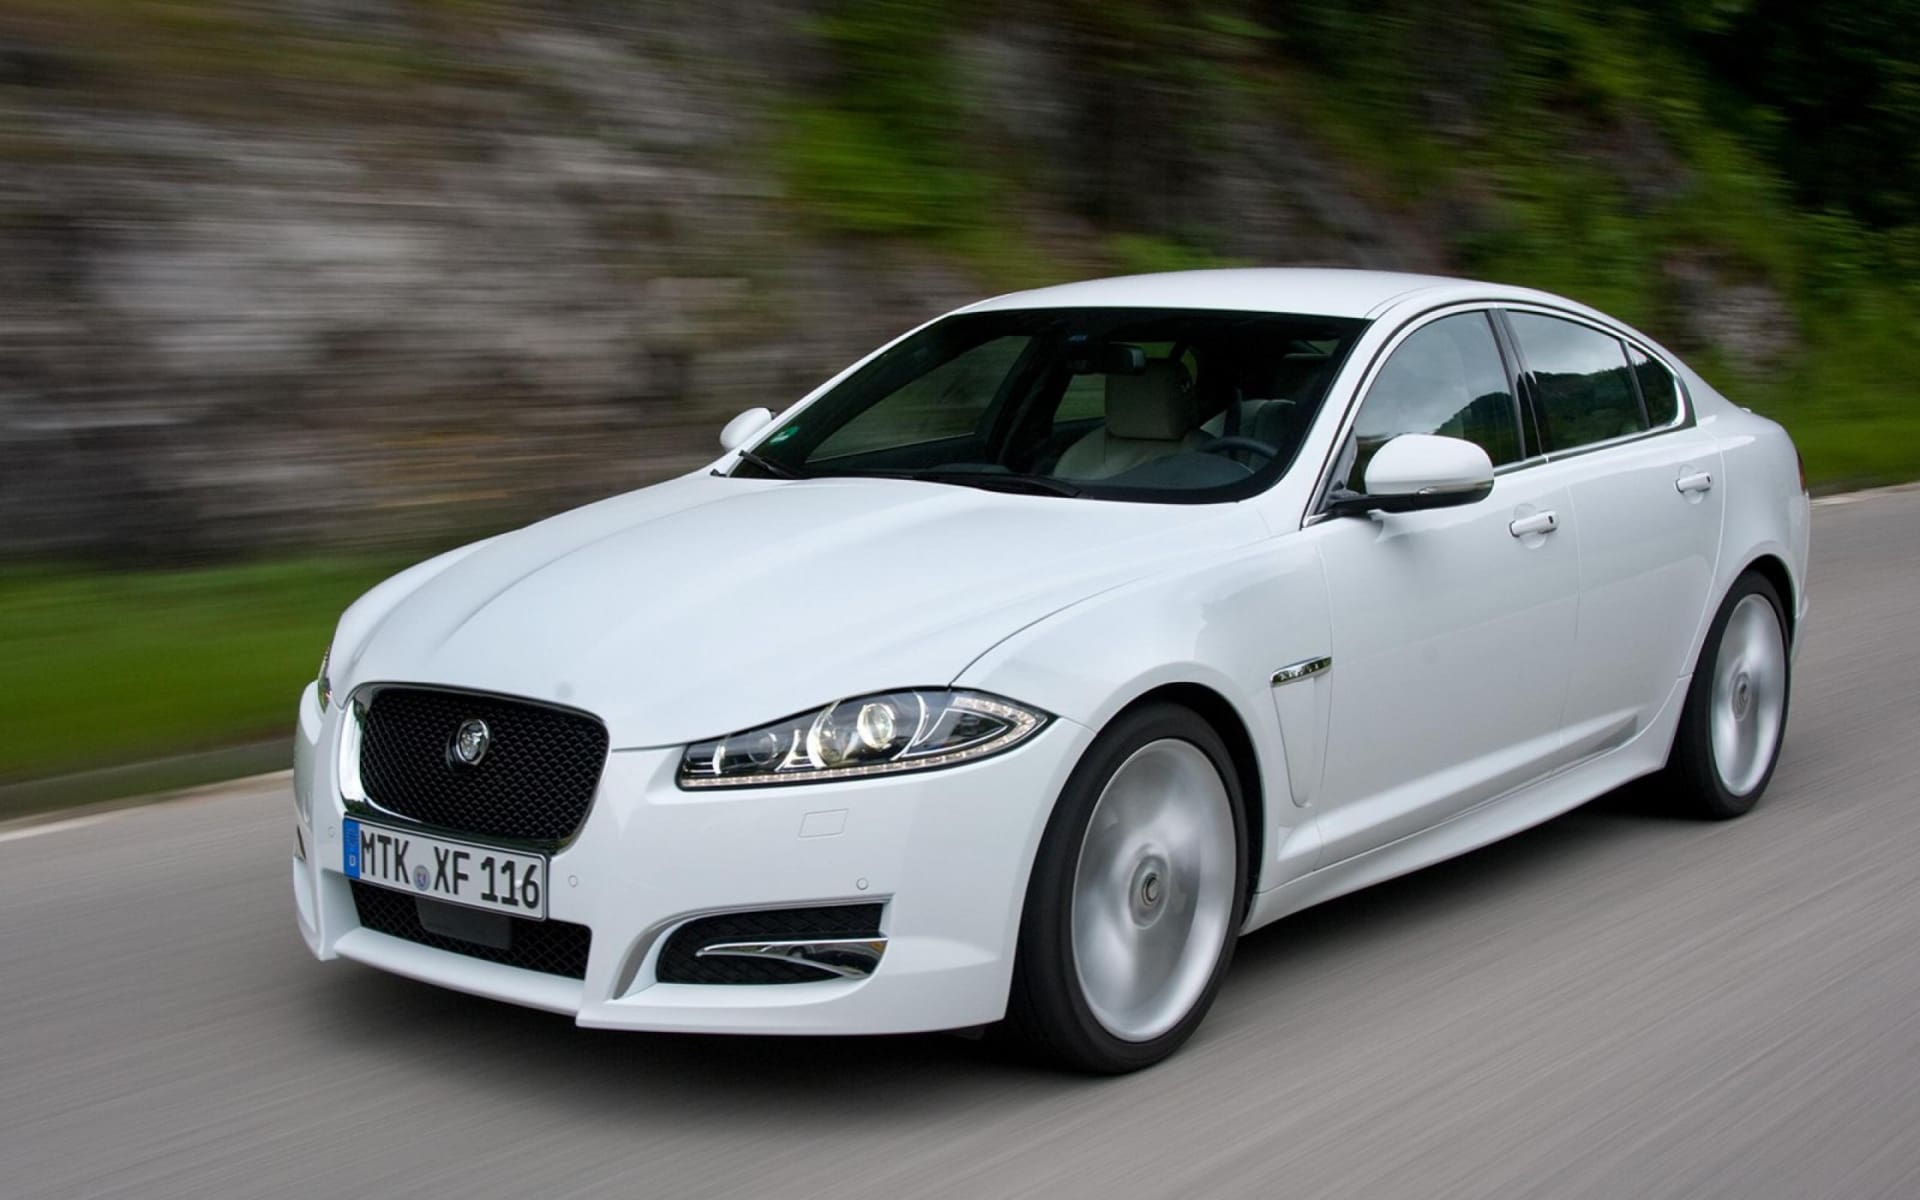 Used Jaguar XF 2.2 Litre Executive (Id-882151) Car in Ahmedabad